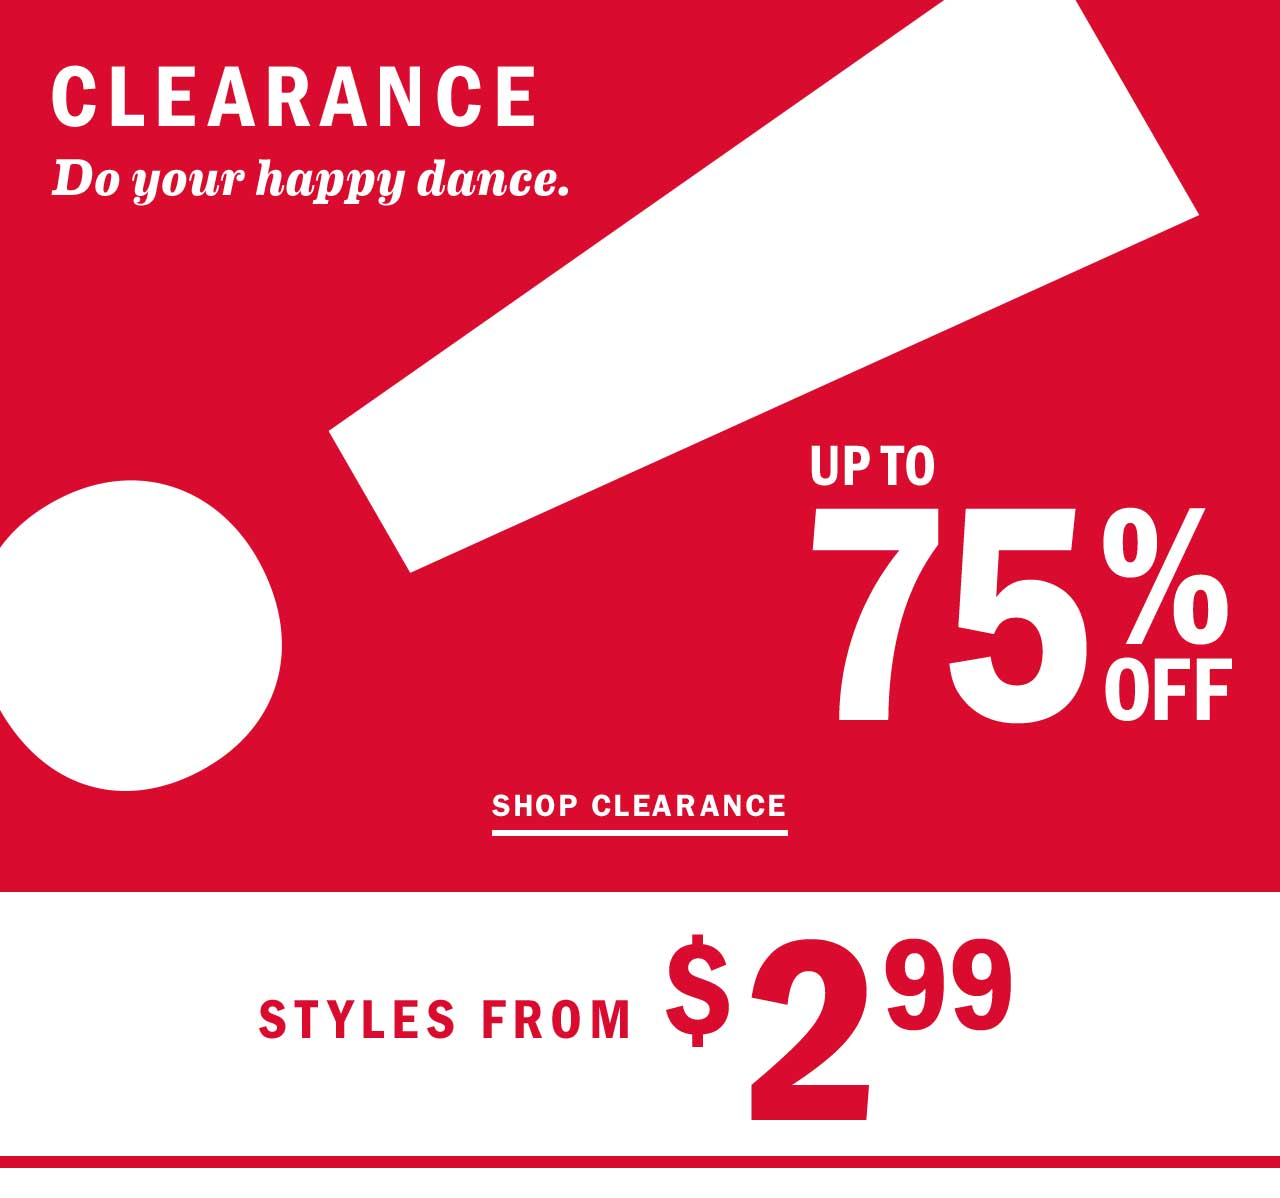 UP TO 75% OFF | SHOP CLEARANCE